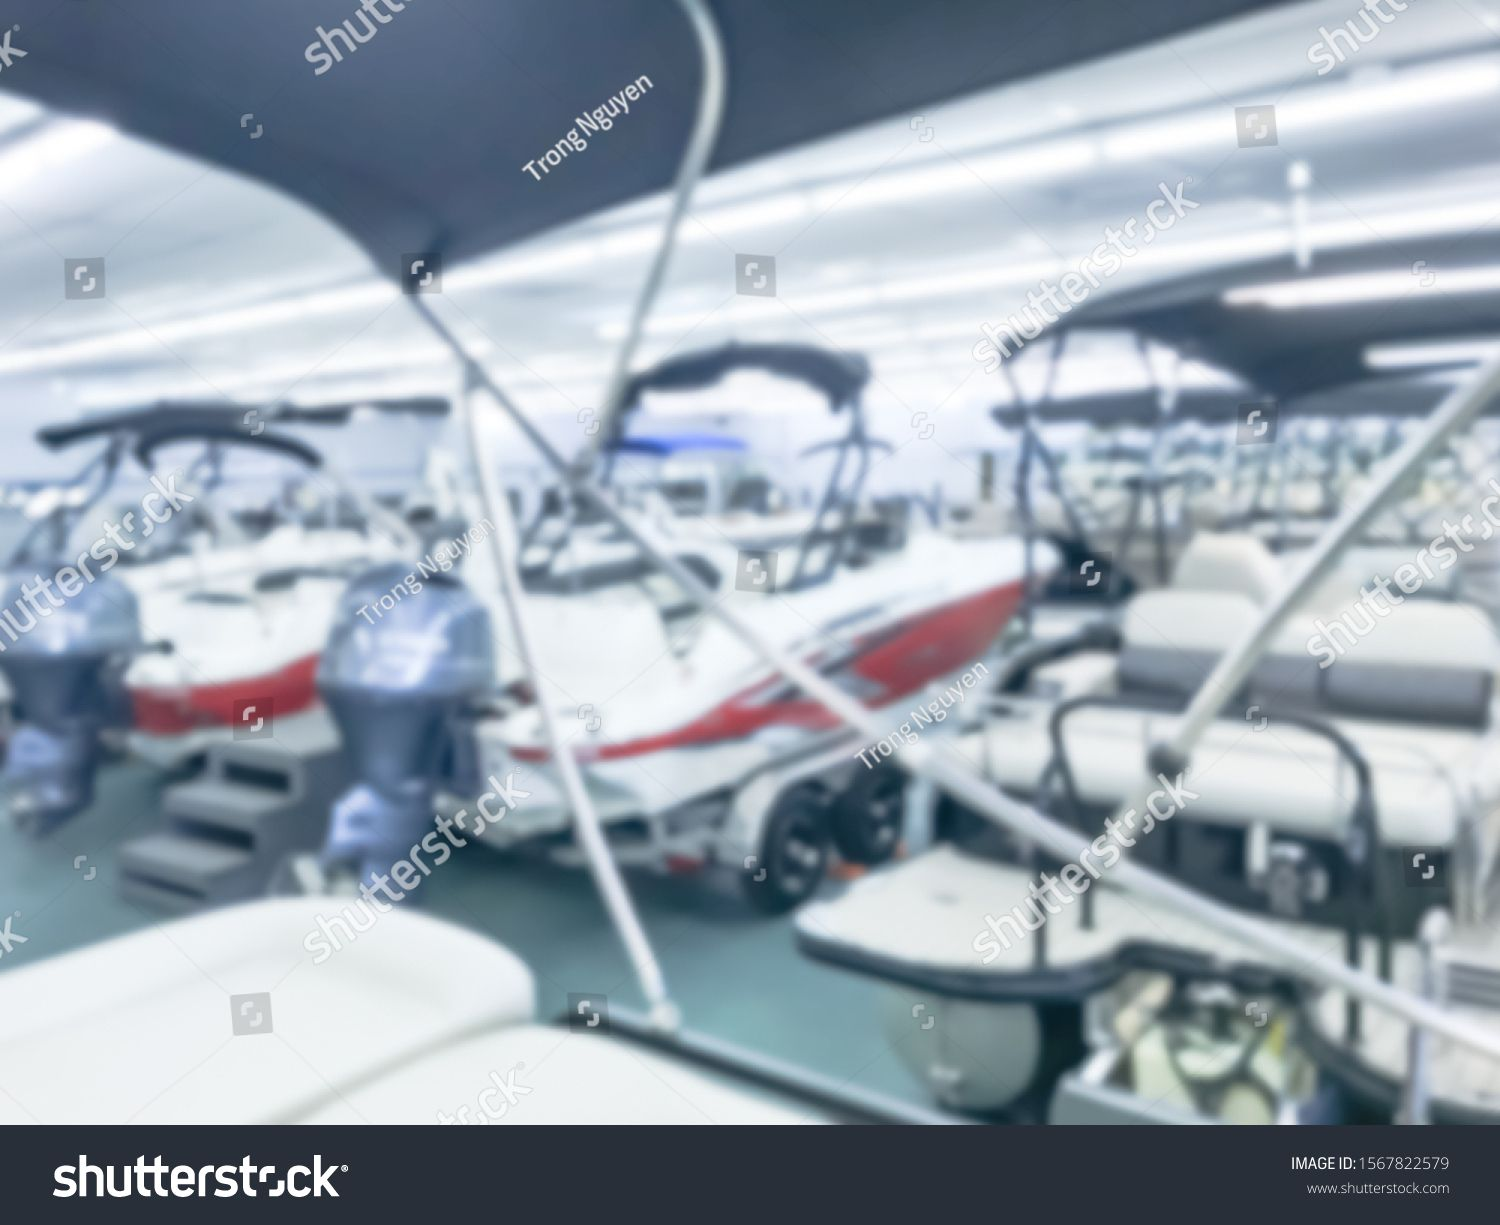 Motion blurred inside a large boat dealer selling variety of new and used boats near Dallas, Texas,